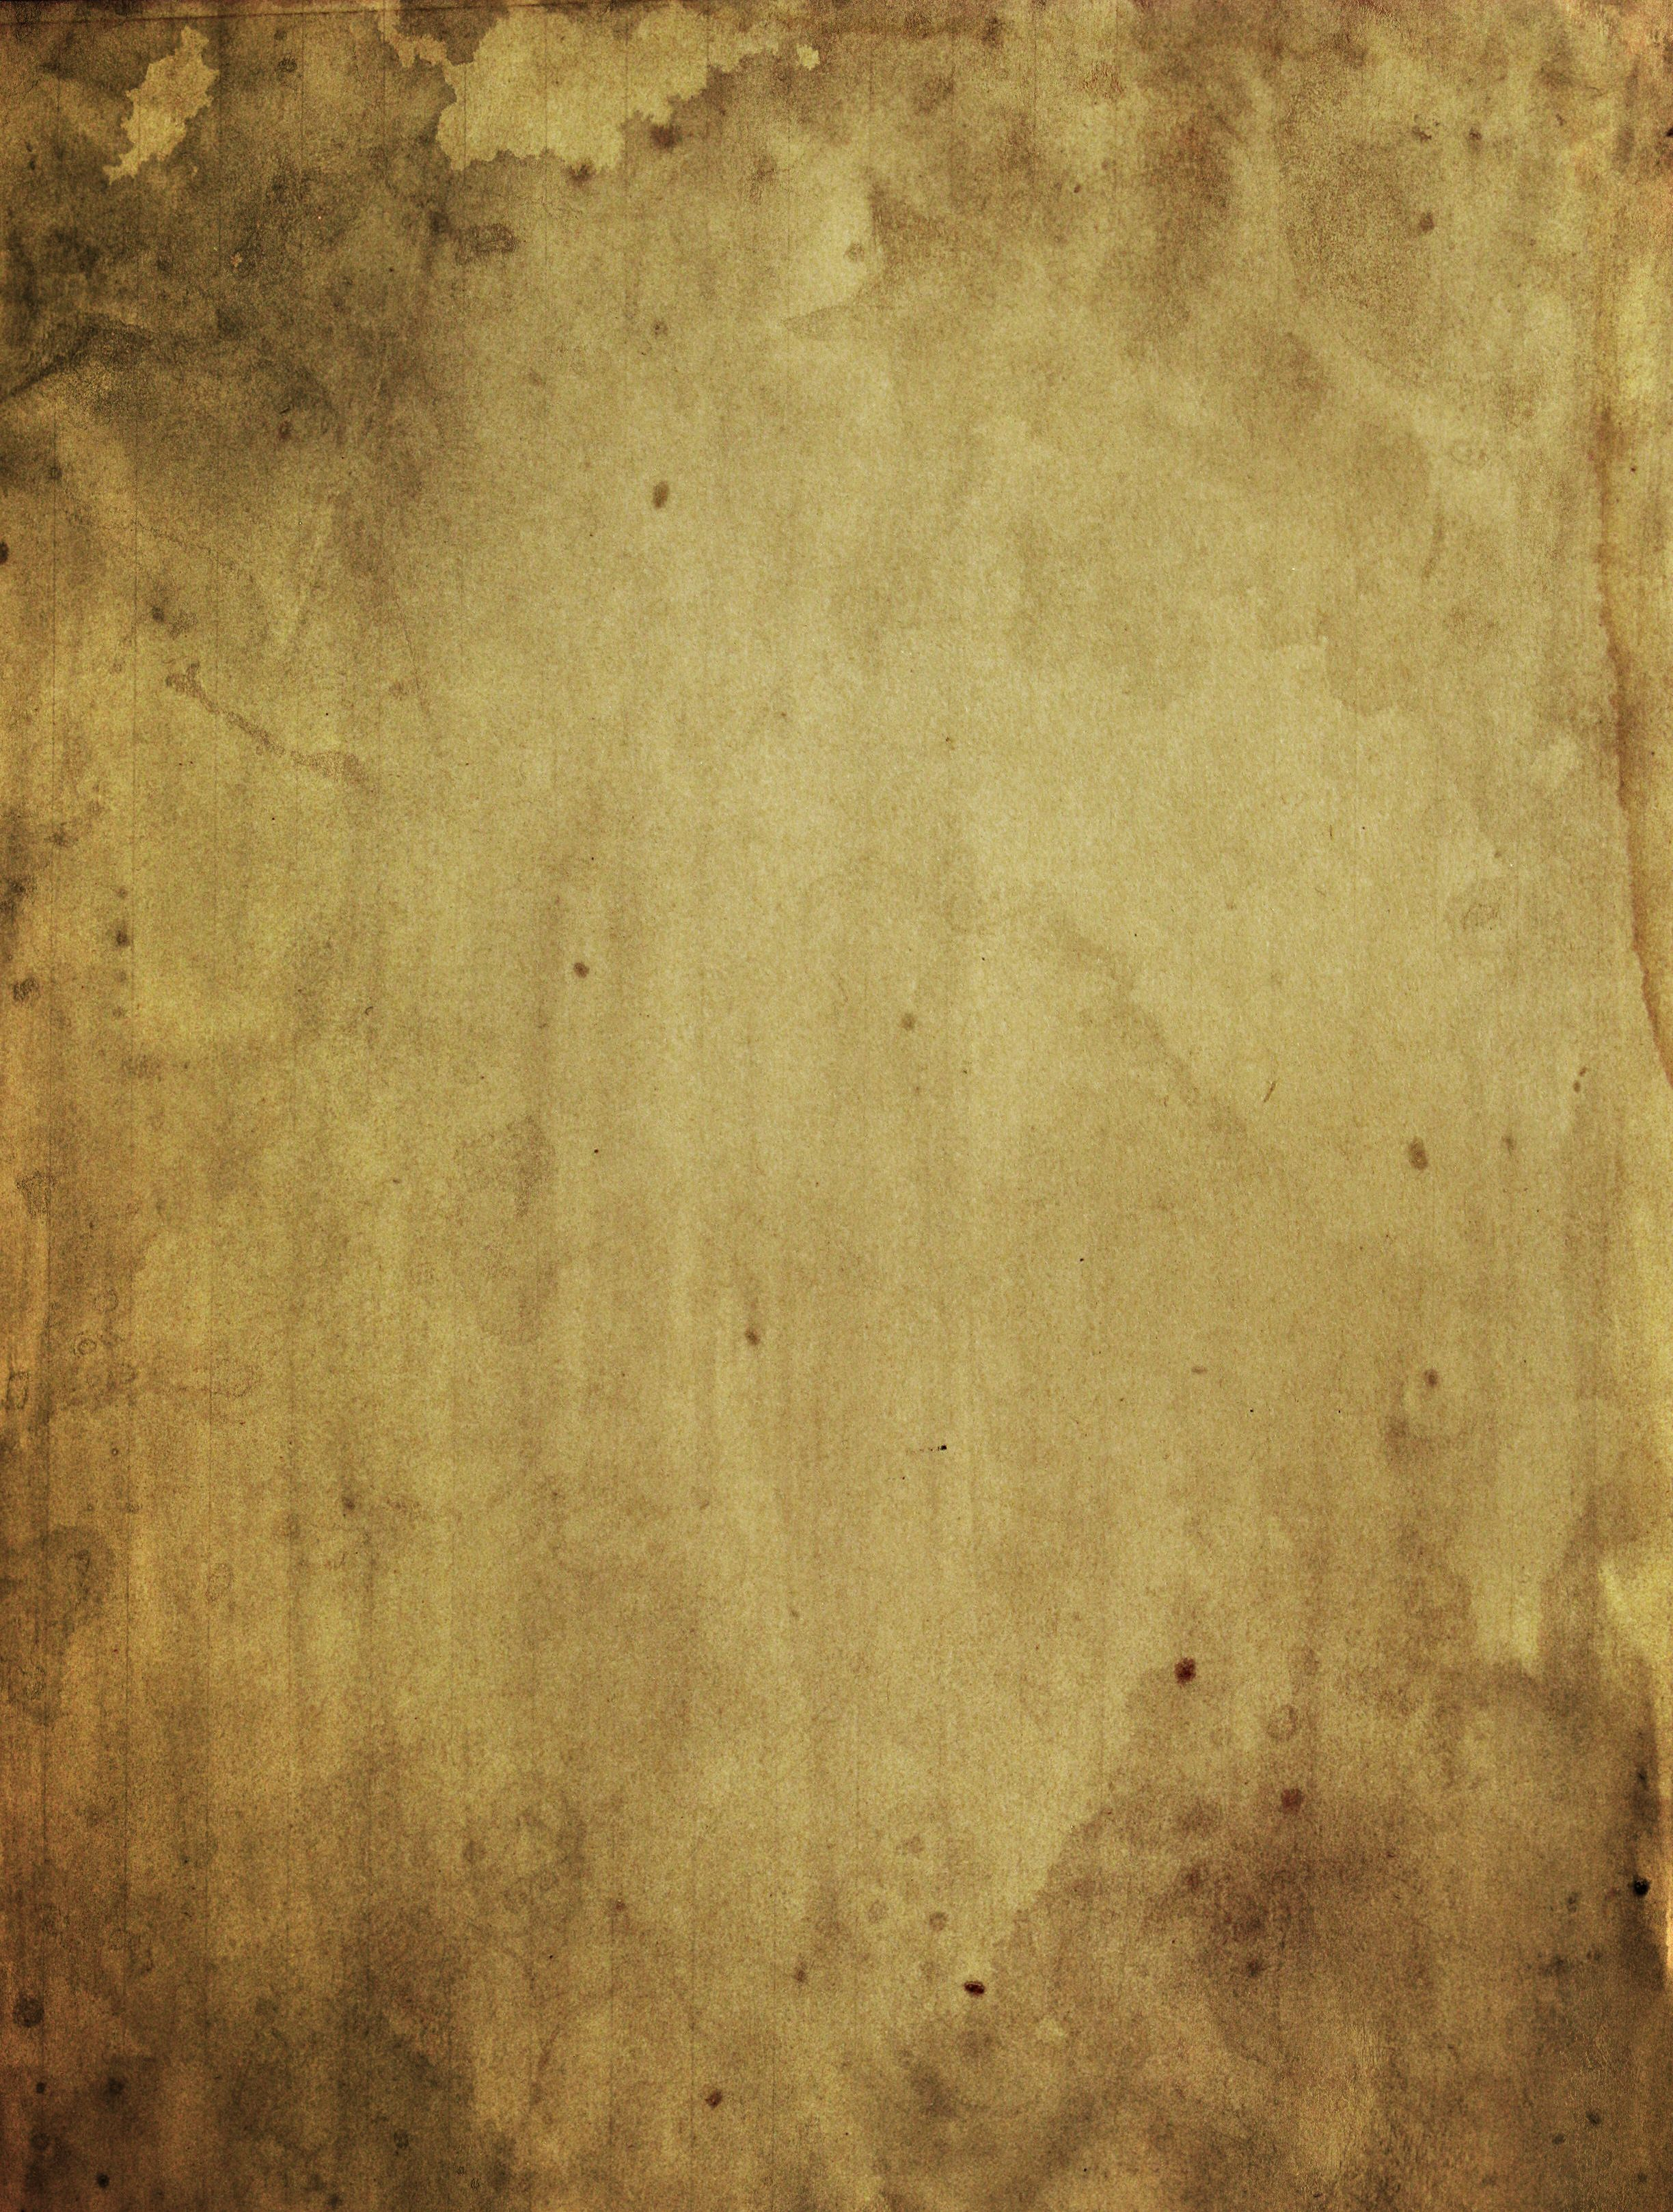 Free High Resolution Textures - gallery - stainedpaper 5 ...